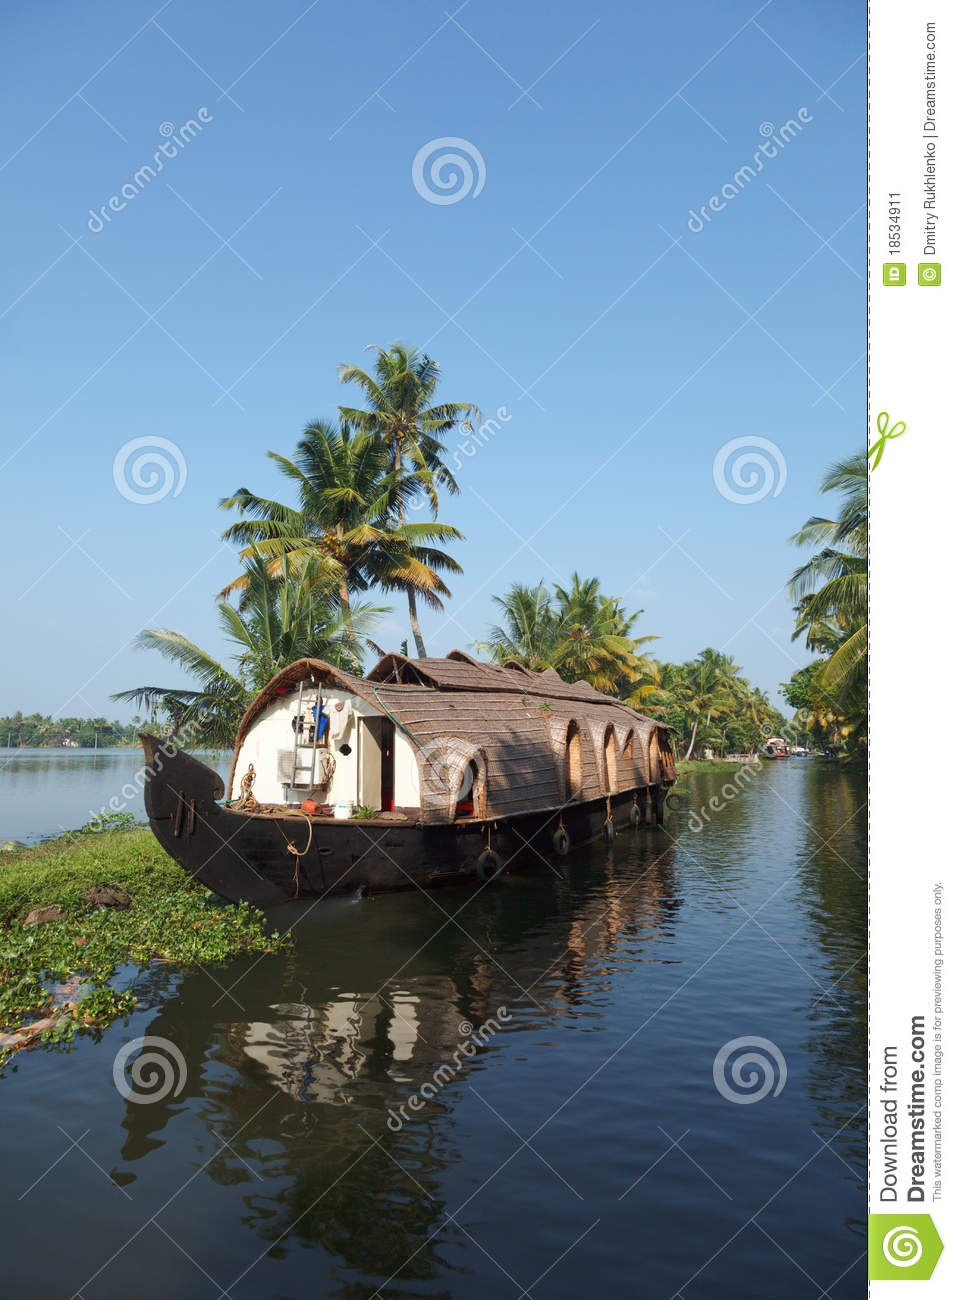 Download House-boat On Kerala Backwaters, Stock Image - Image of water, boat: 18534911